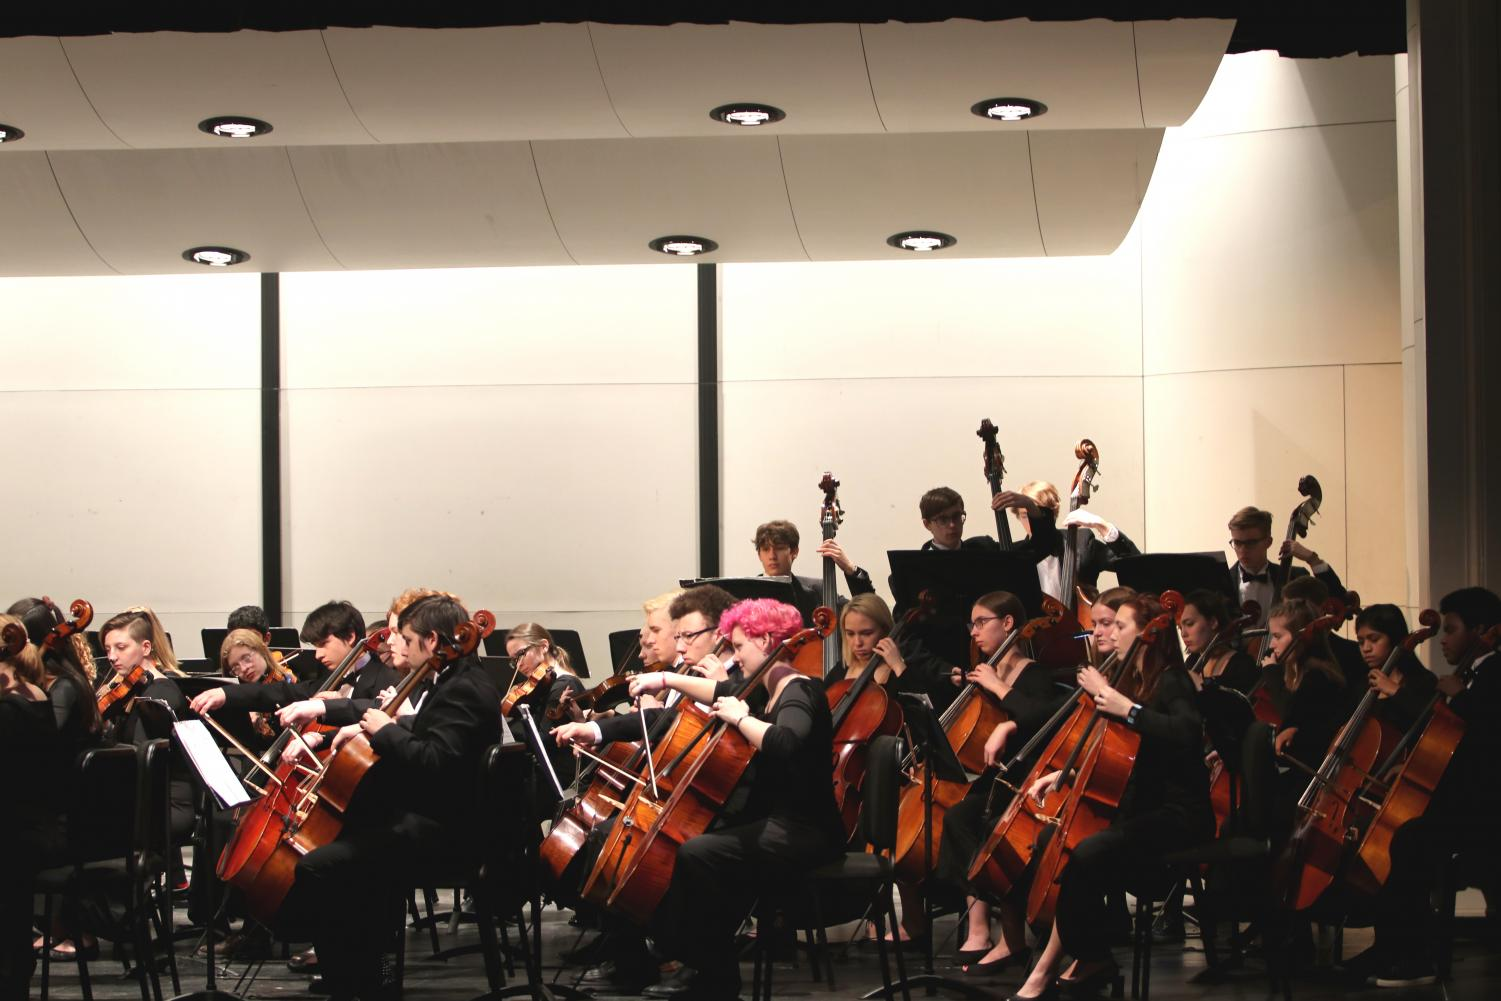 The+Symphony+Orchestra+prepares+for+their+first+movement.